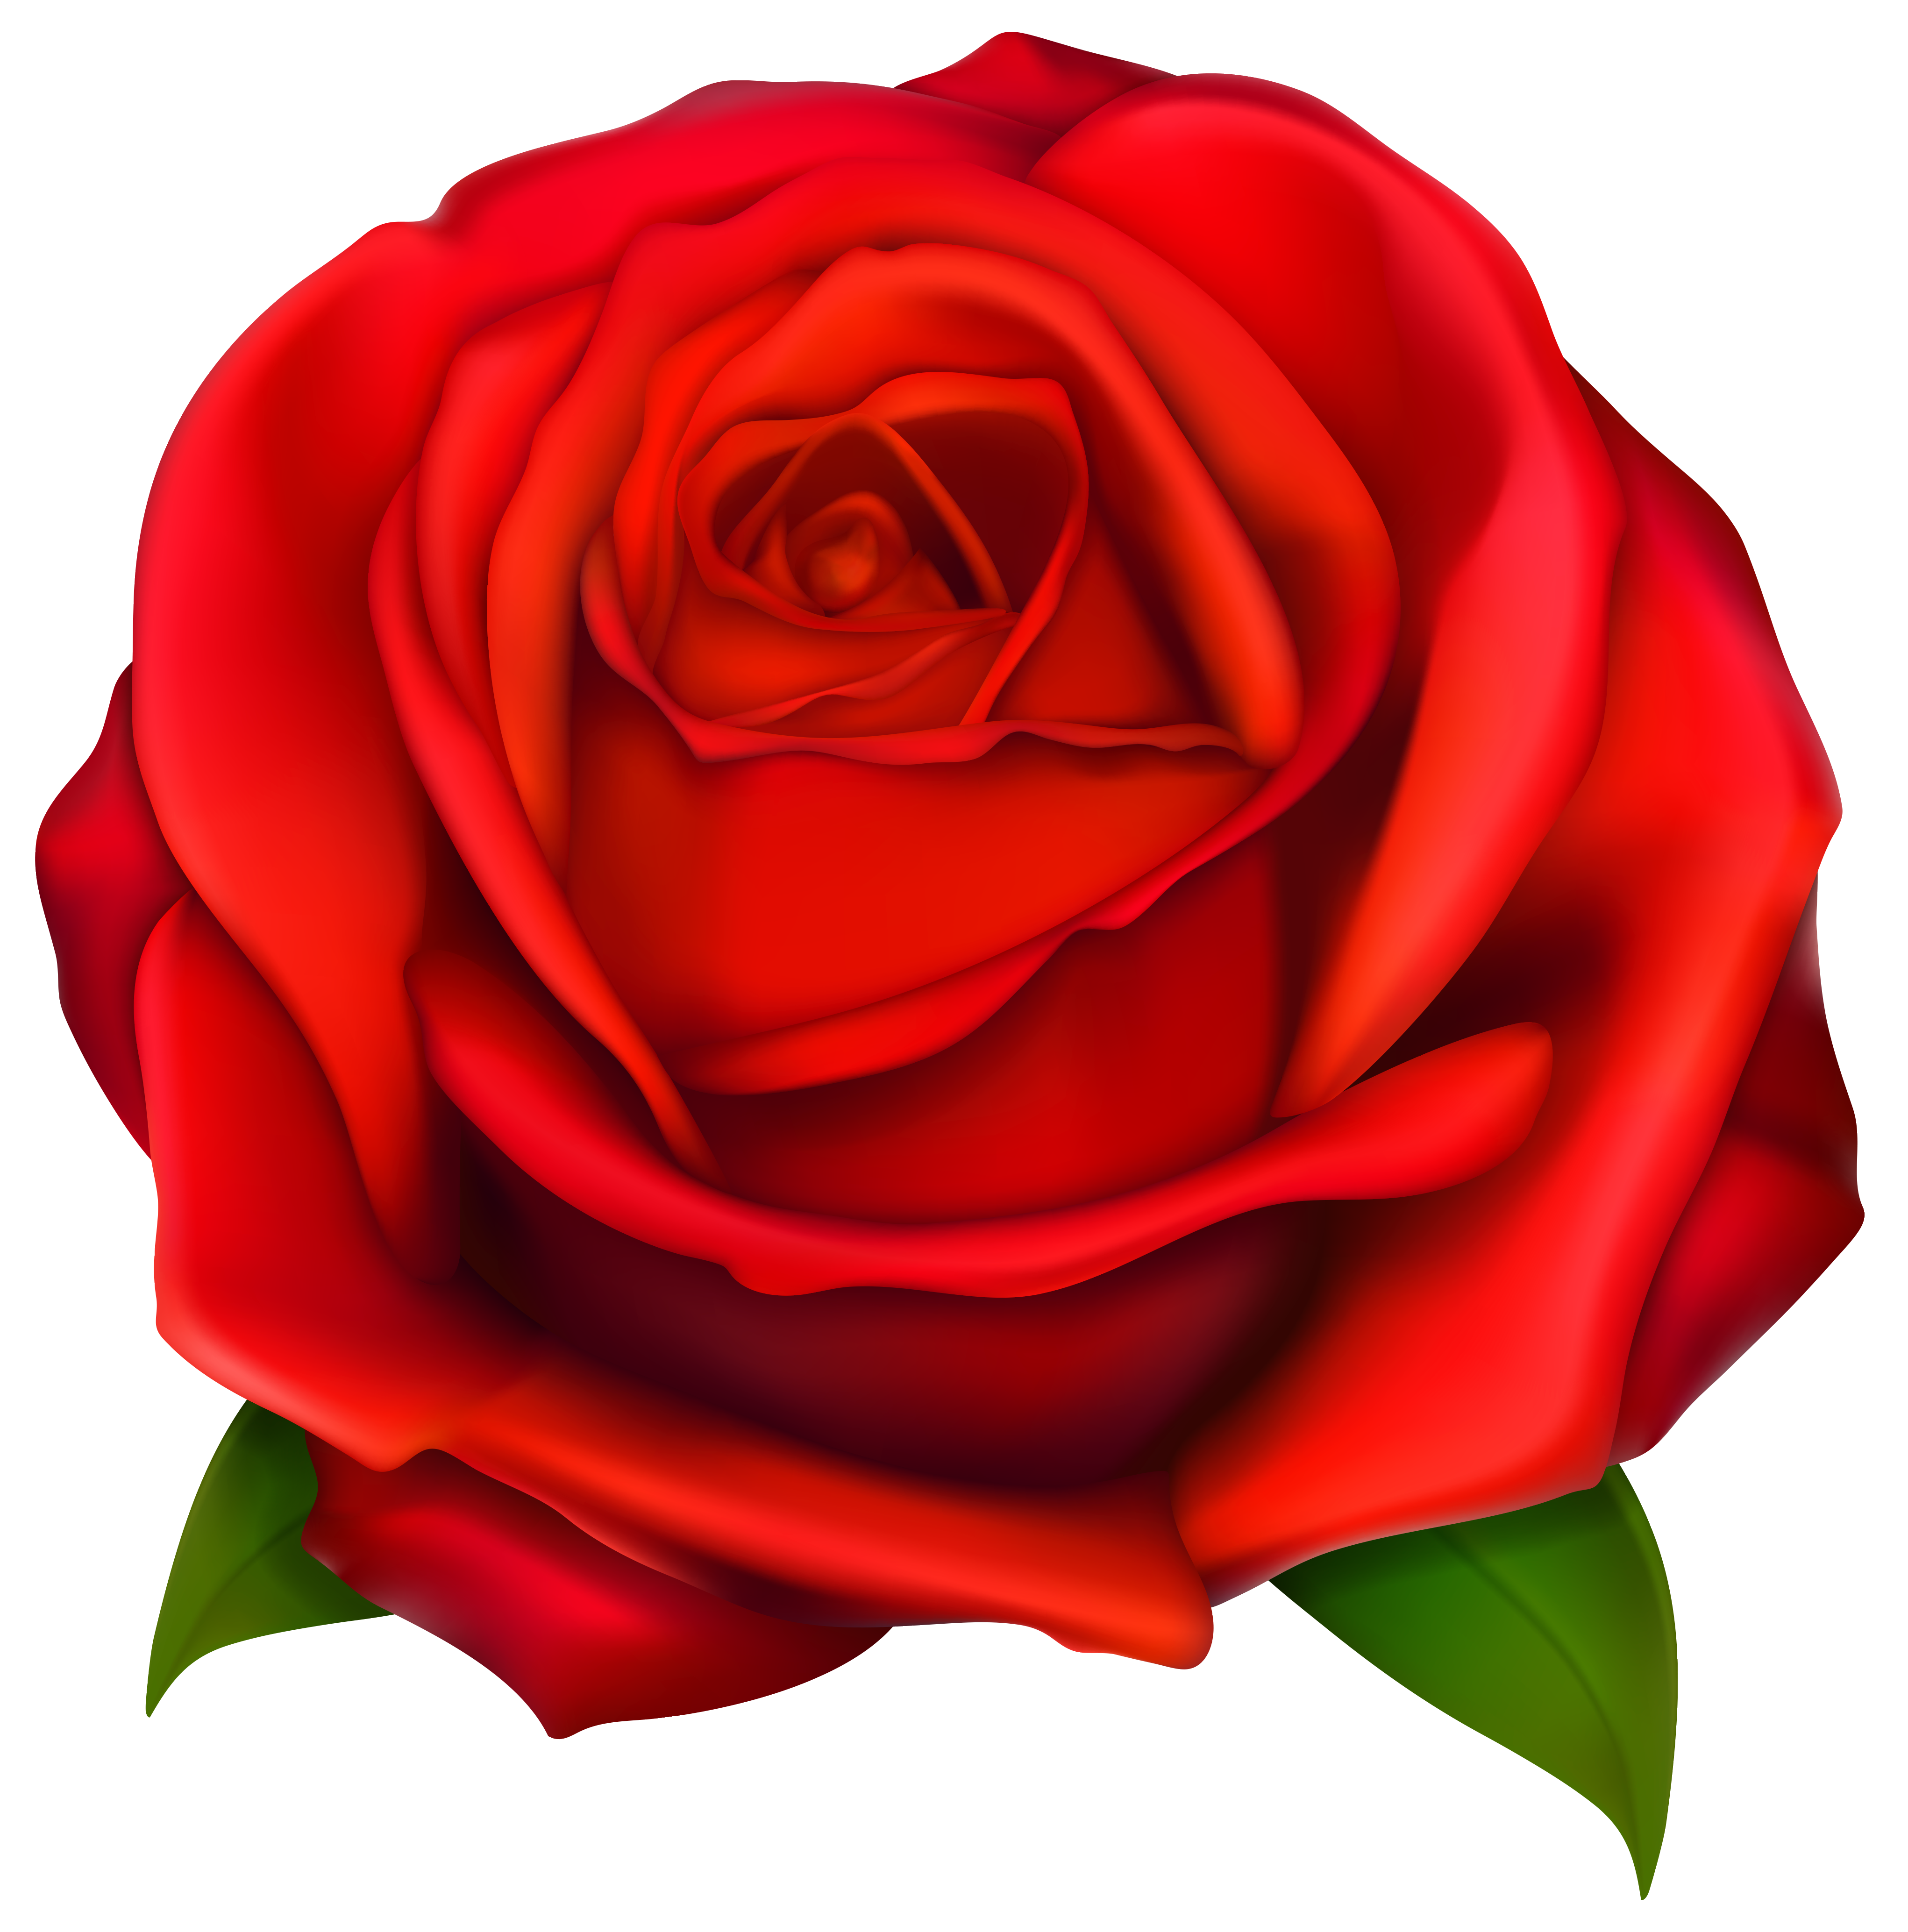 Image of clip art red rose 2 red roses clip art images free